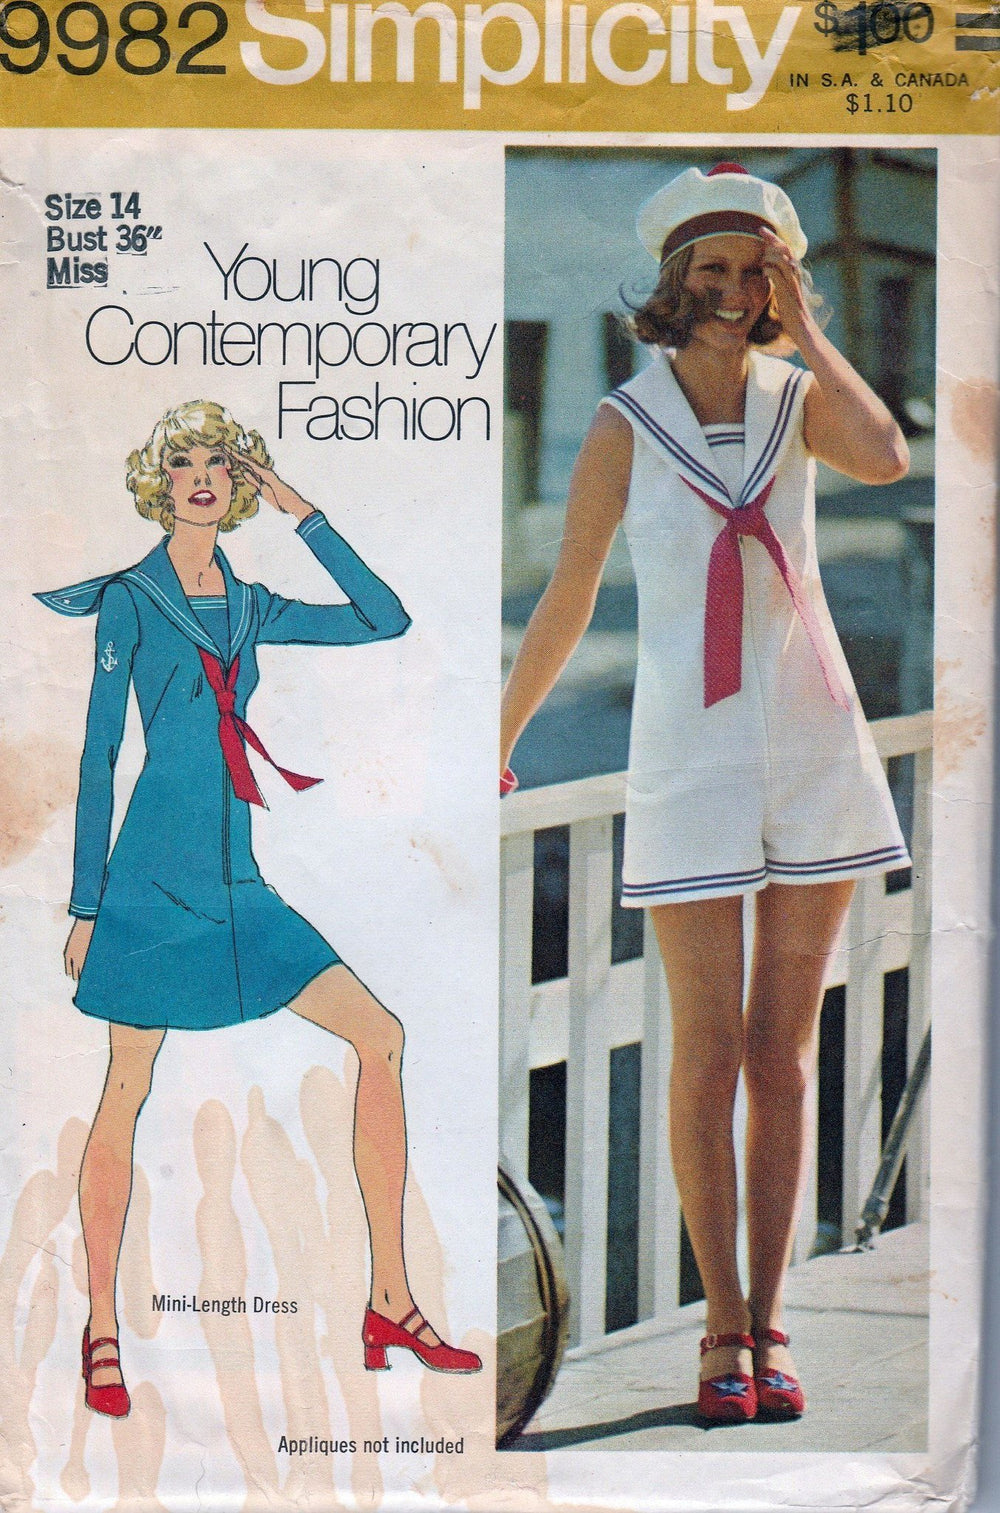 Simplicity 9982 Vintage 1970's Sewing Pattern Ladies Mini Sailor Dress Pantdress Romper - VintageStitching - Vintage Sewing Patterns